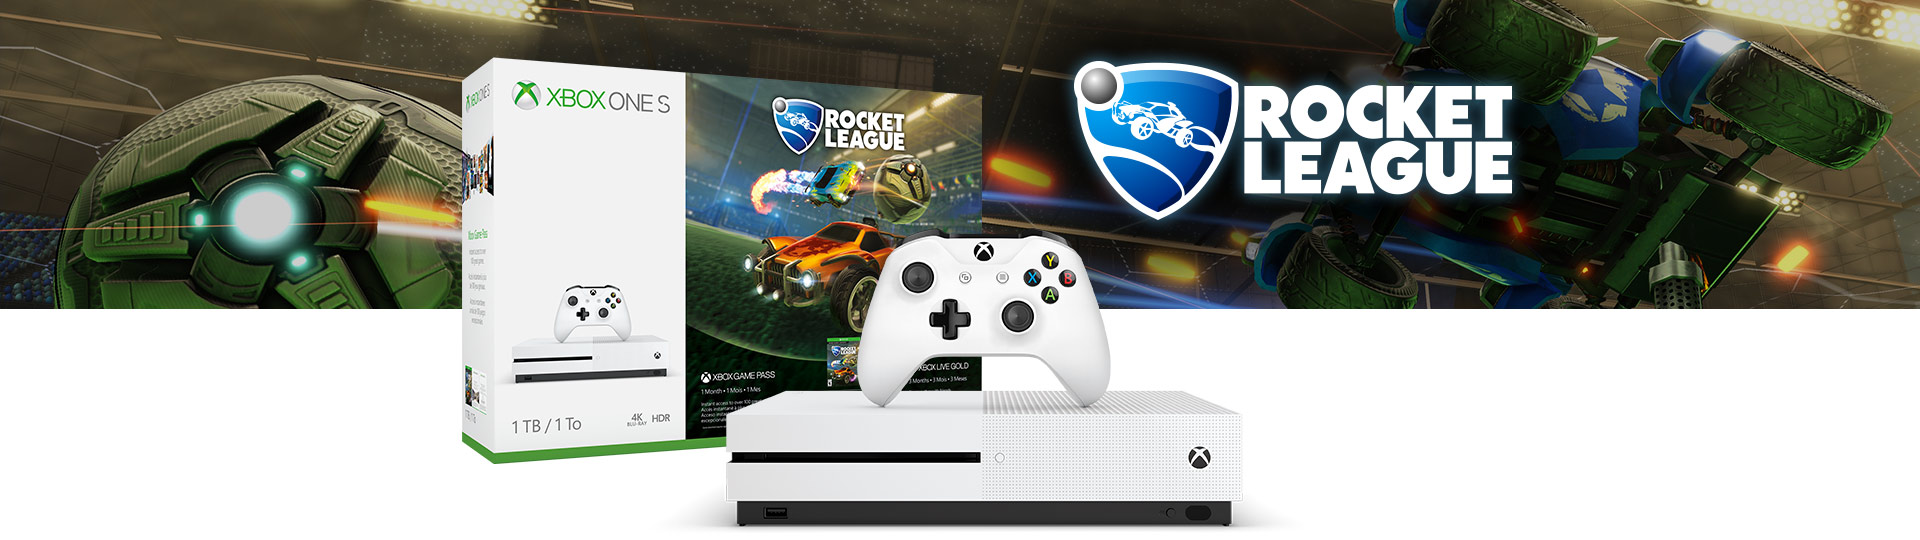 Pack Xbox One S (1 To) + Rocket League